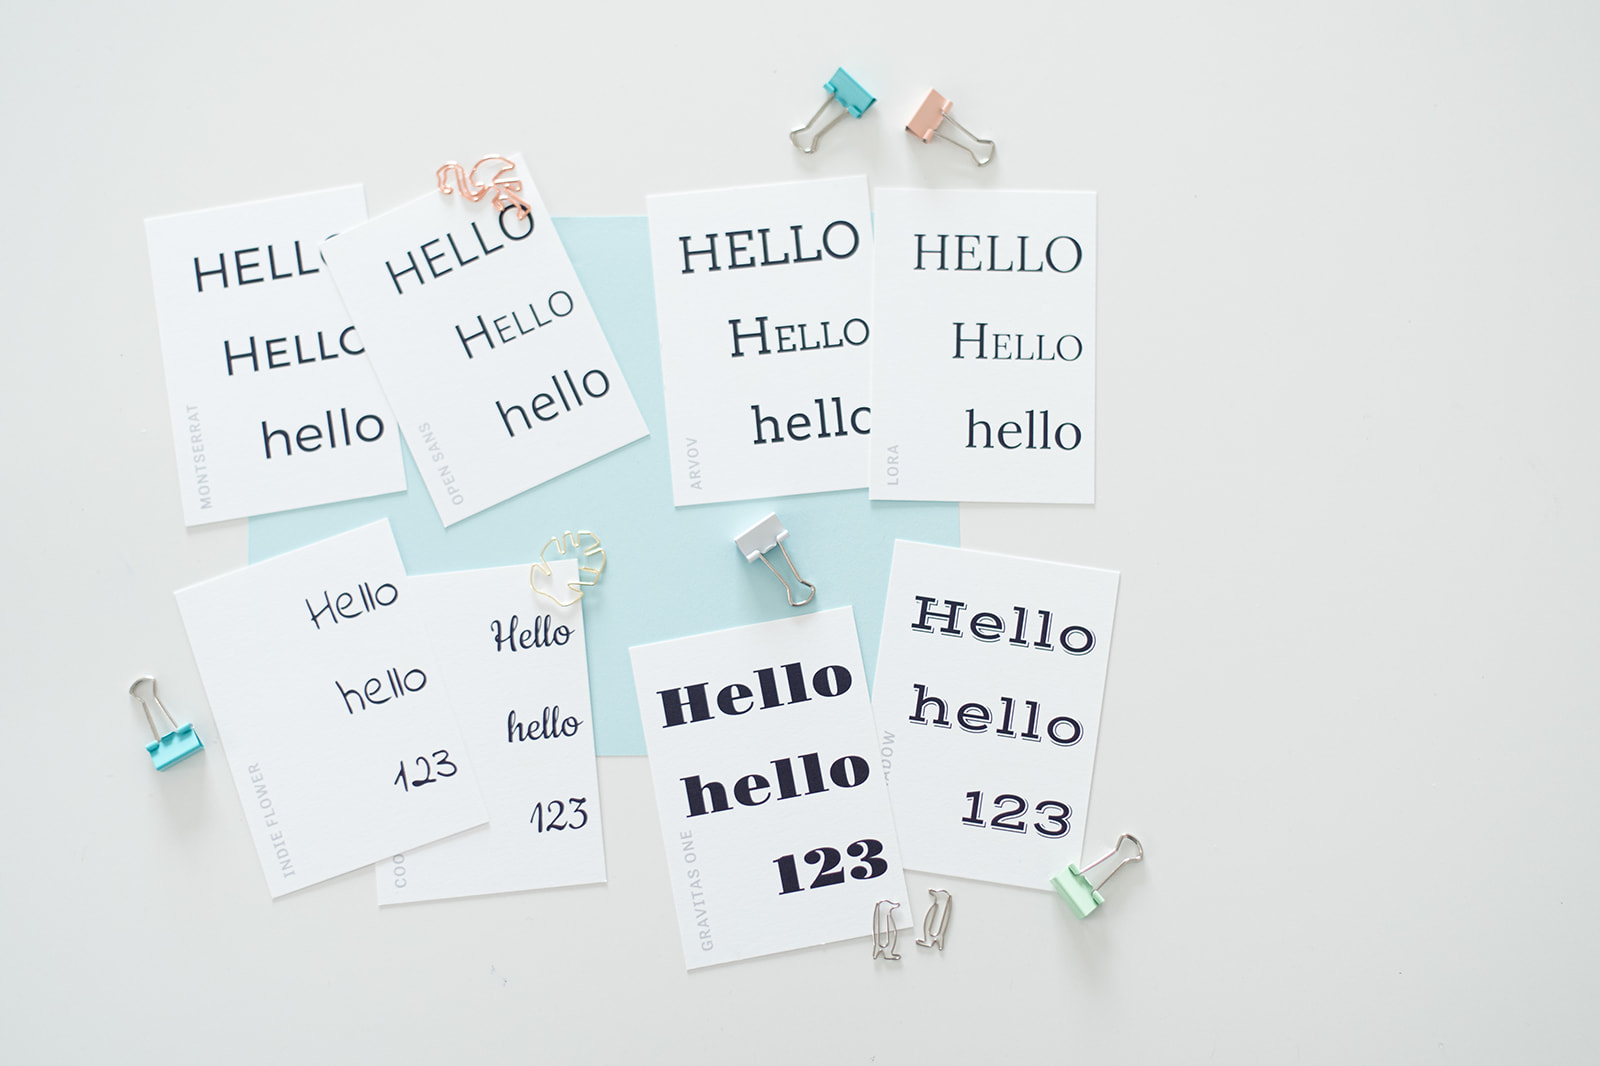 """The word """"hello"""" and """"123"""" printed on various pieces of paper. Each paper has the words printed in a different font types."""